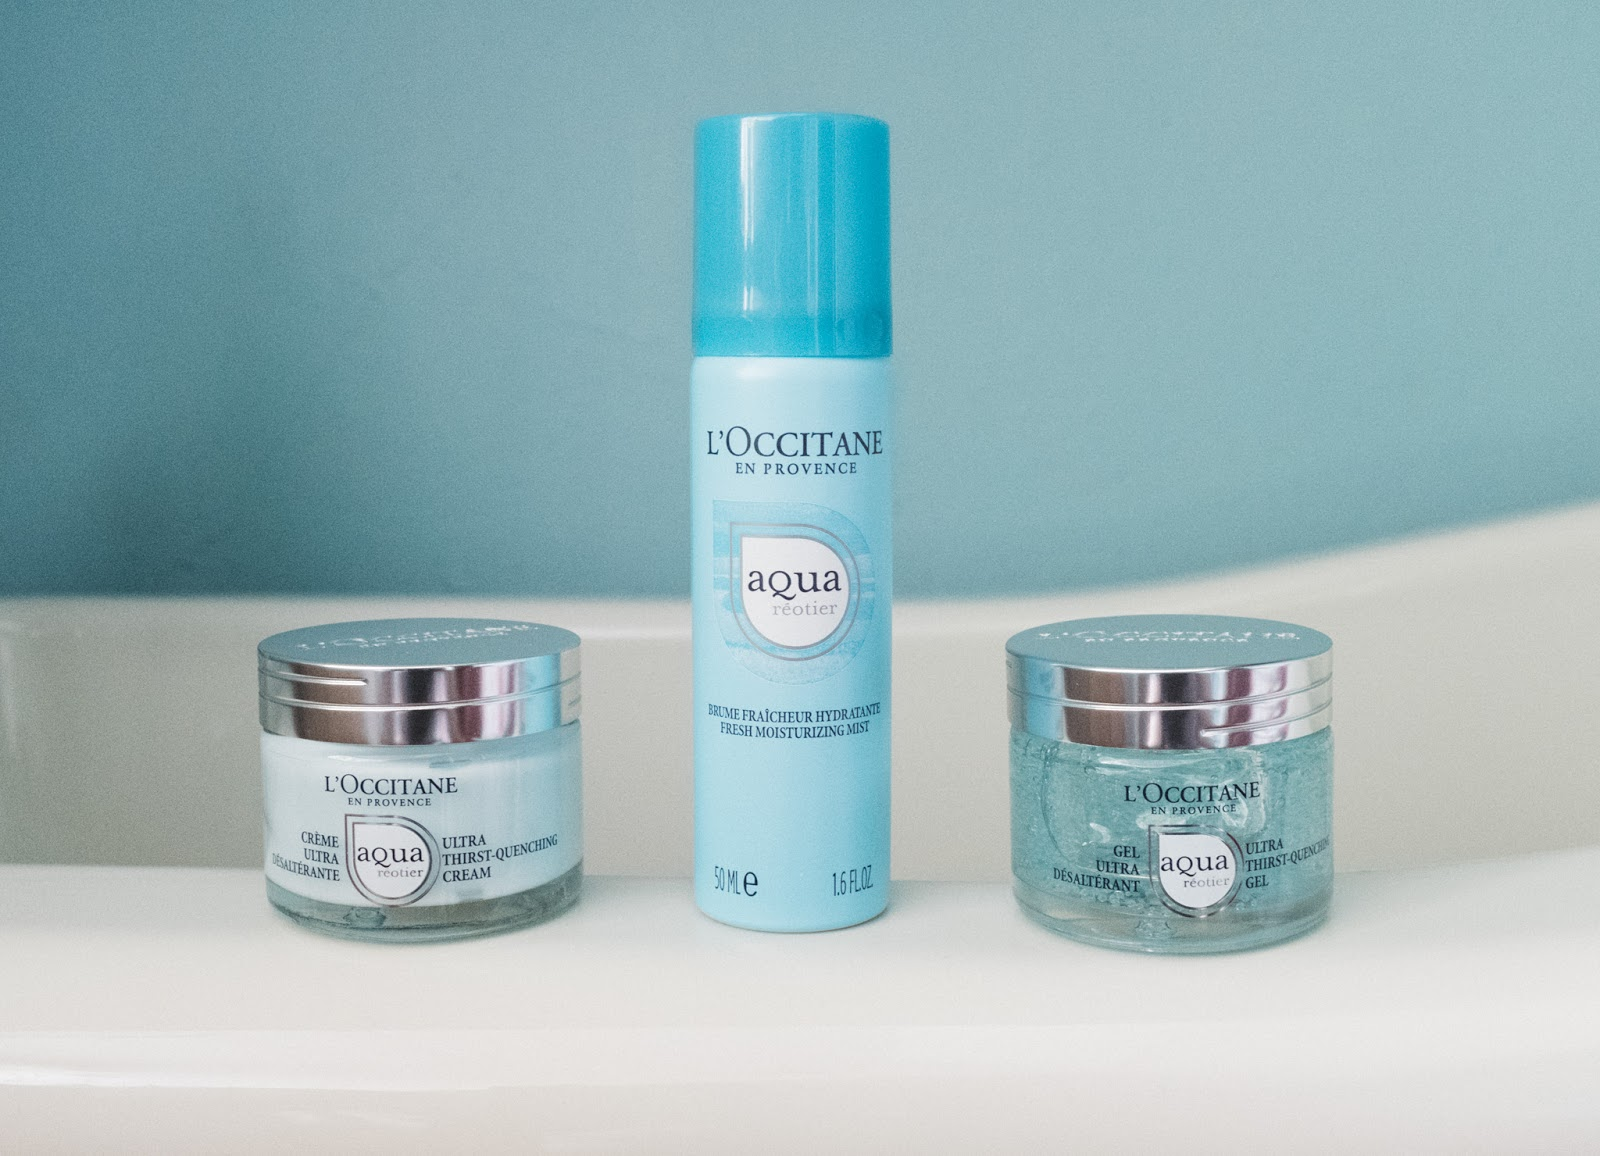 L'Occitane Aqua Réotier Collection